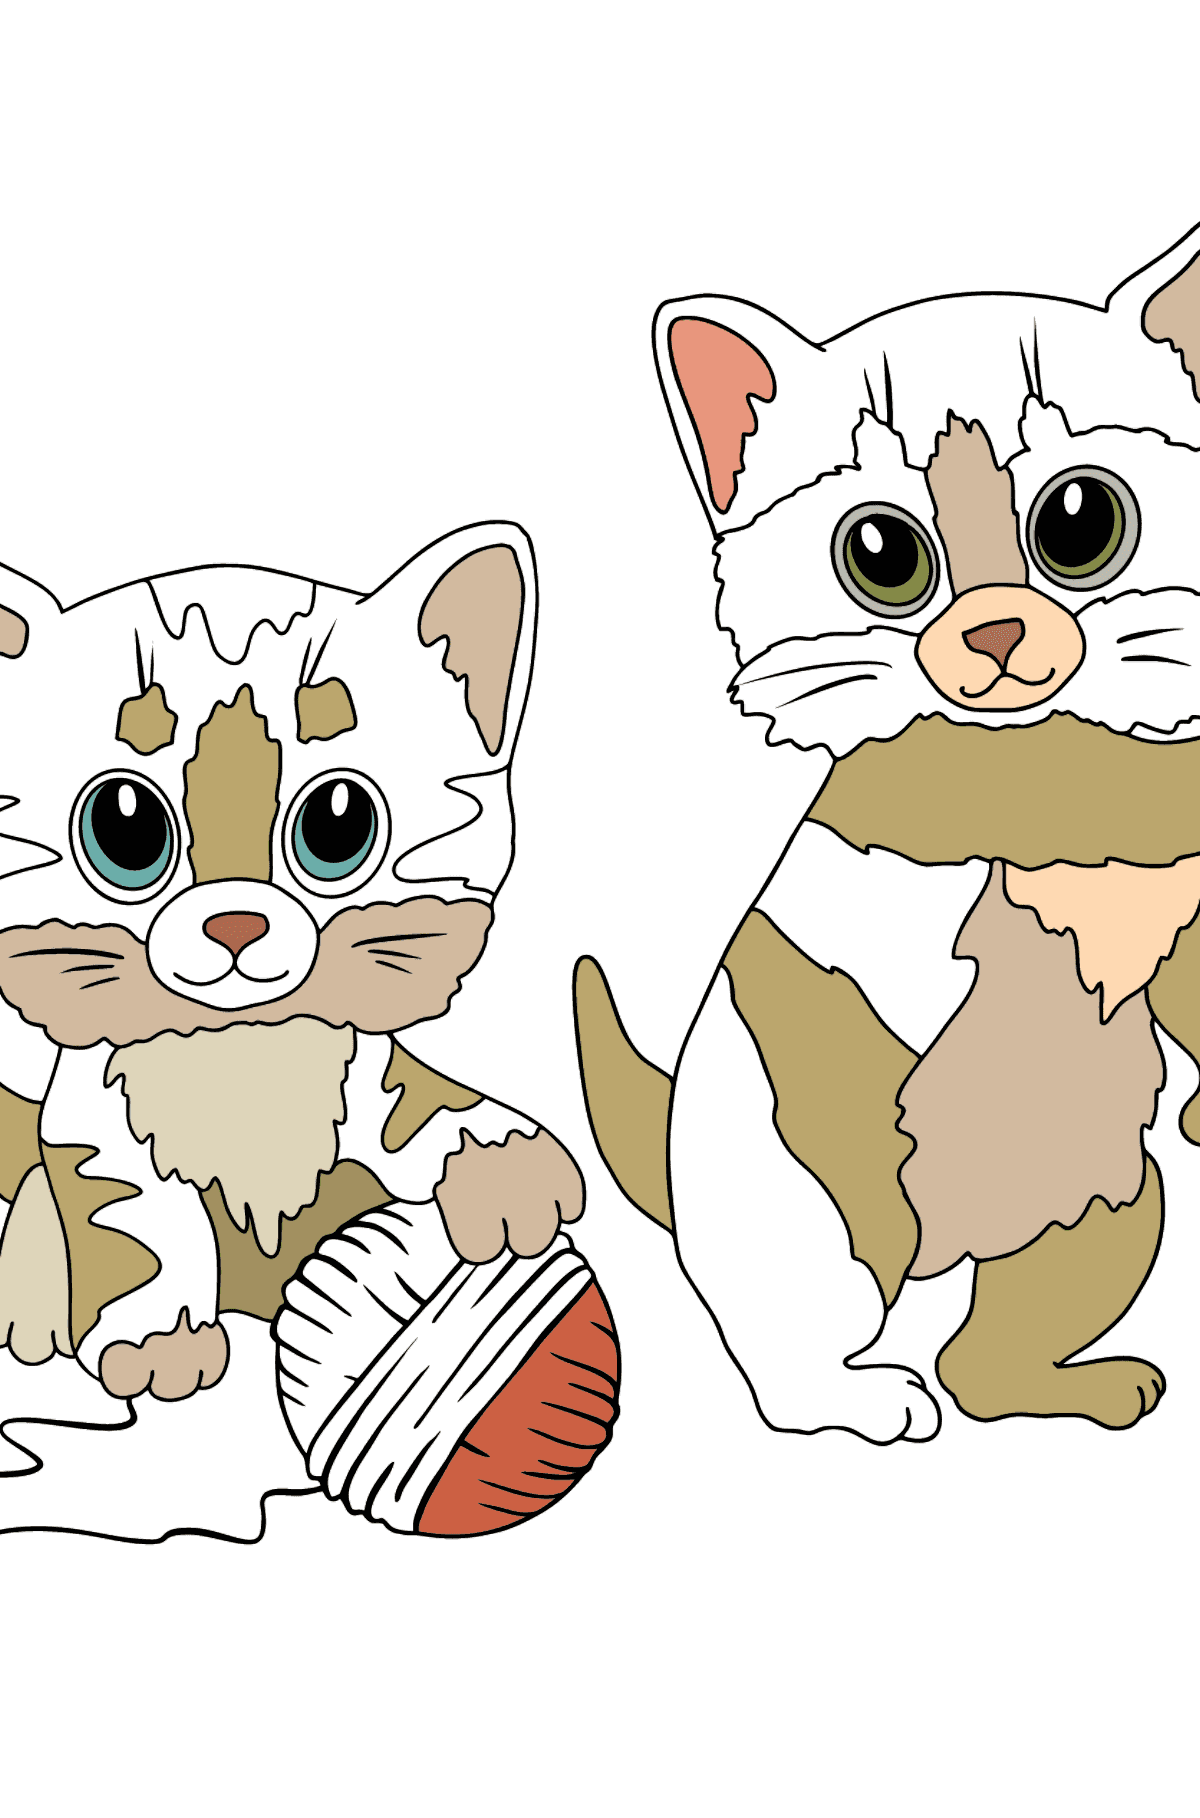 Coloring Page - Kitty Cat - Coloring Pages for Kids